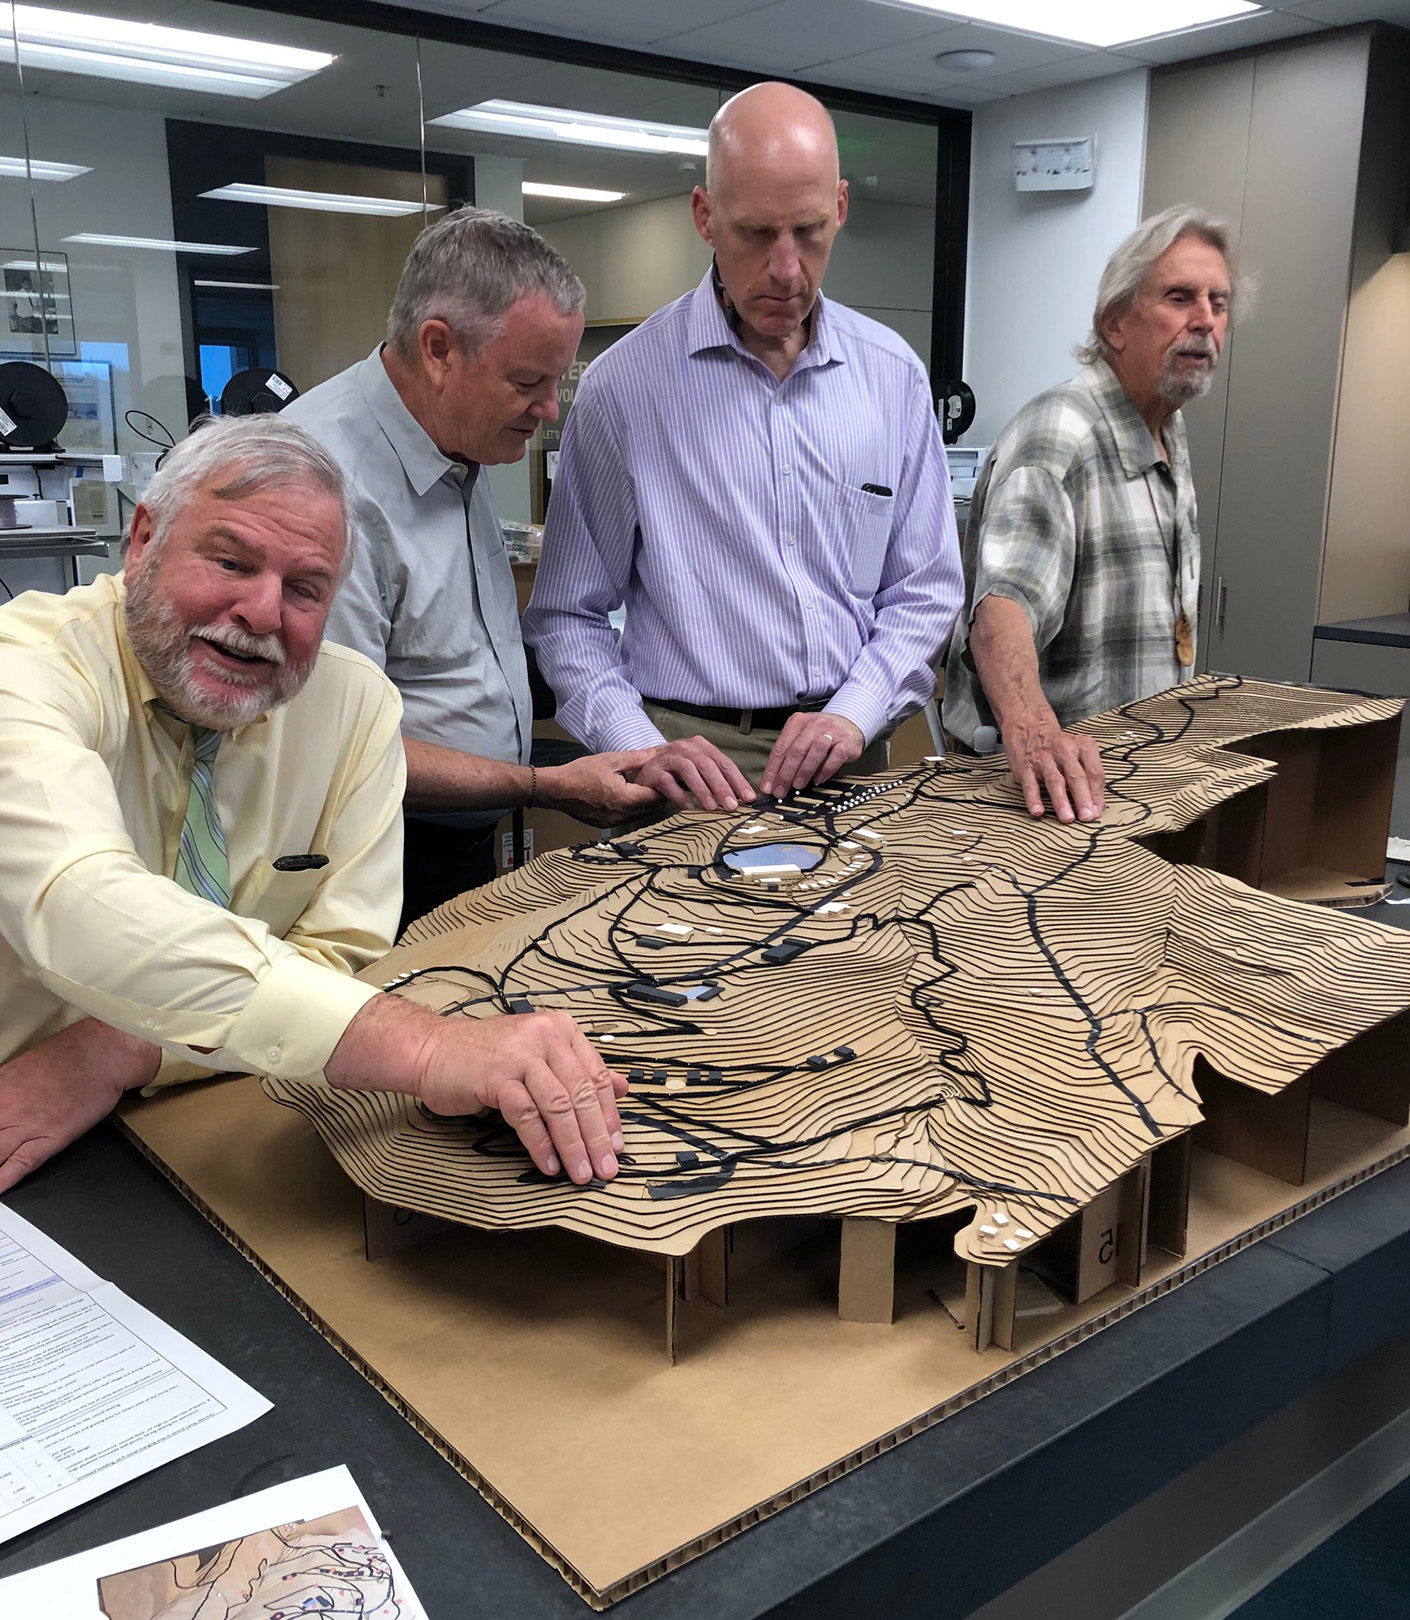 Demonstration of the tactile model. Four men feel the raised textures on the model.